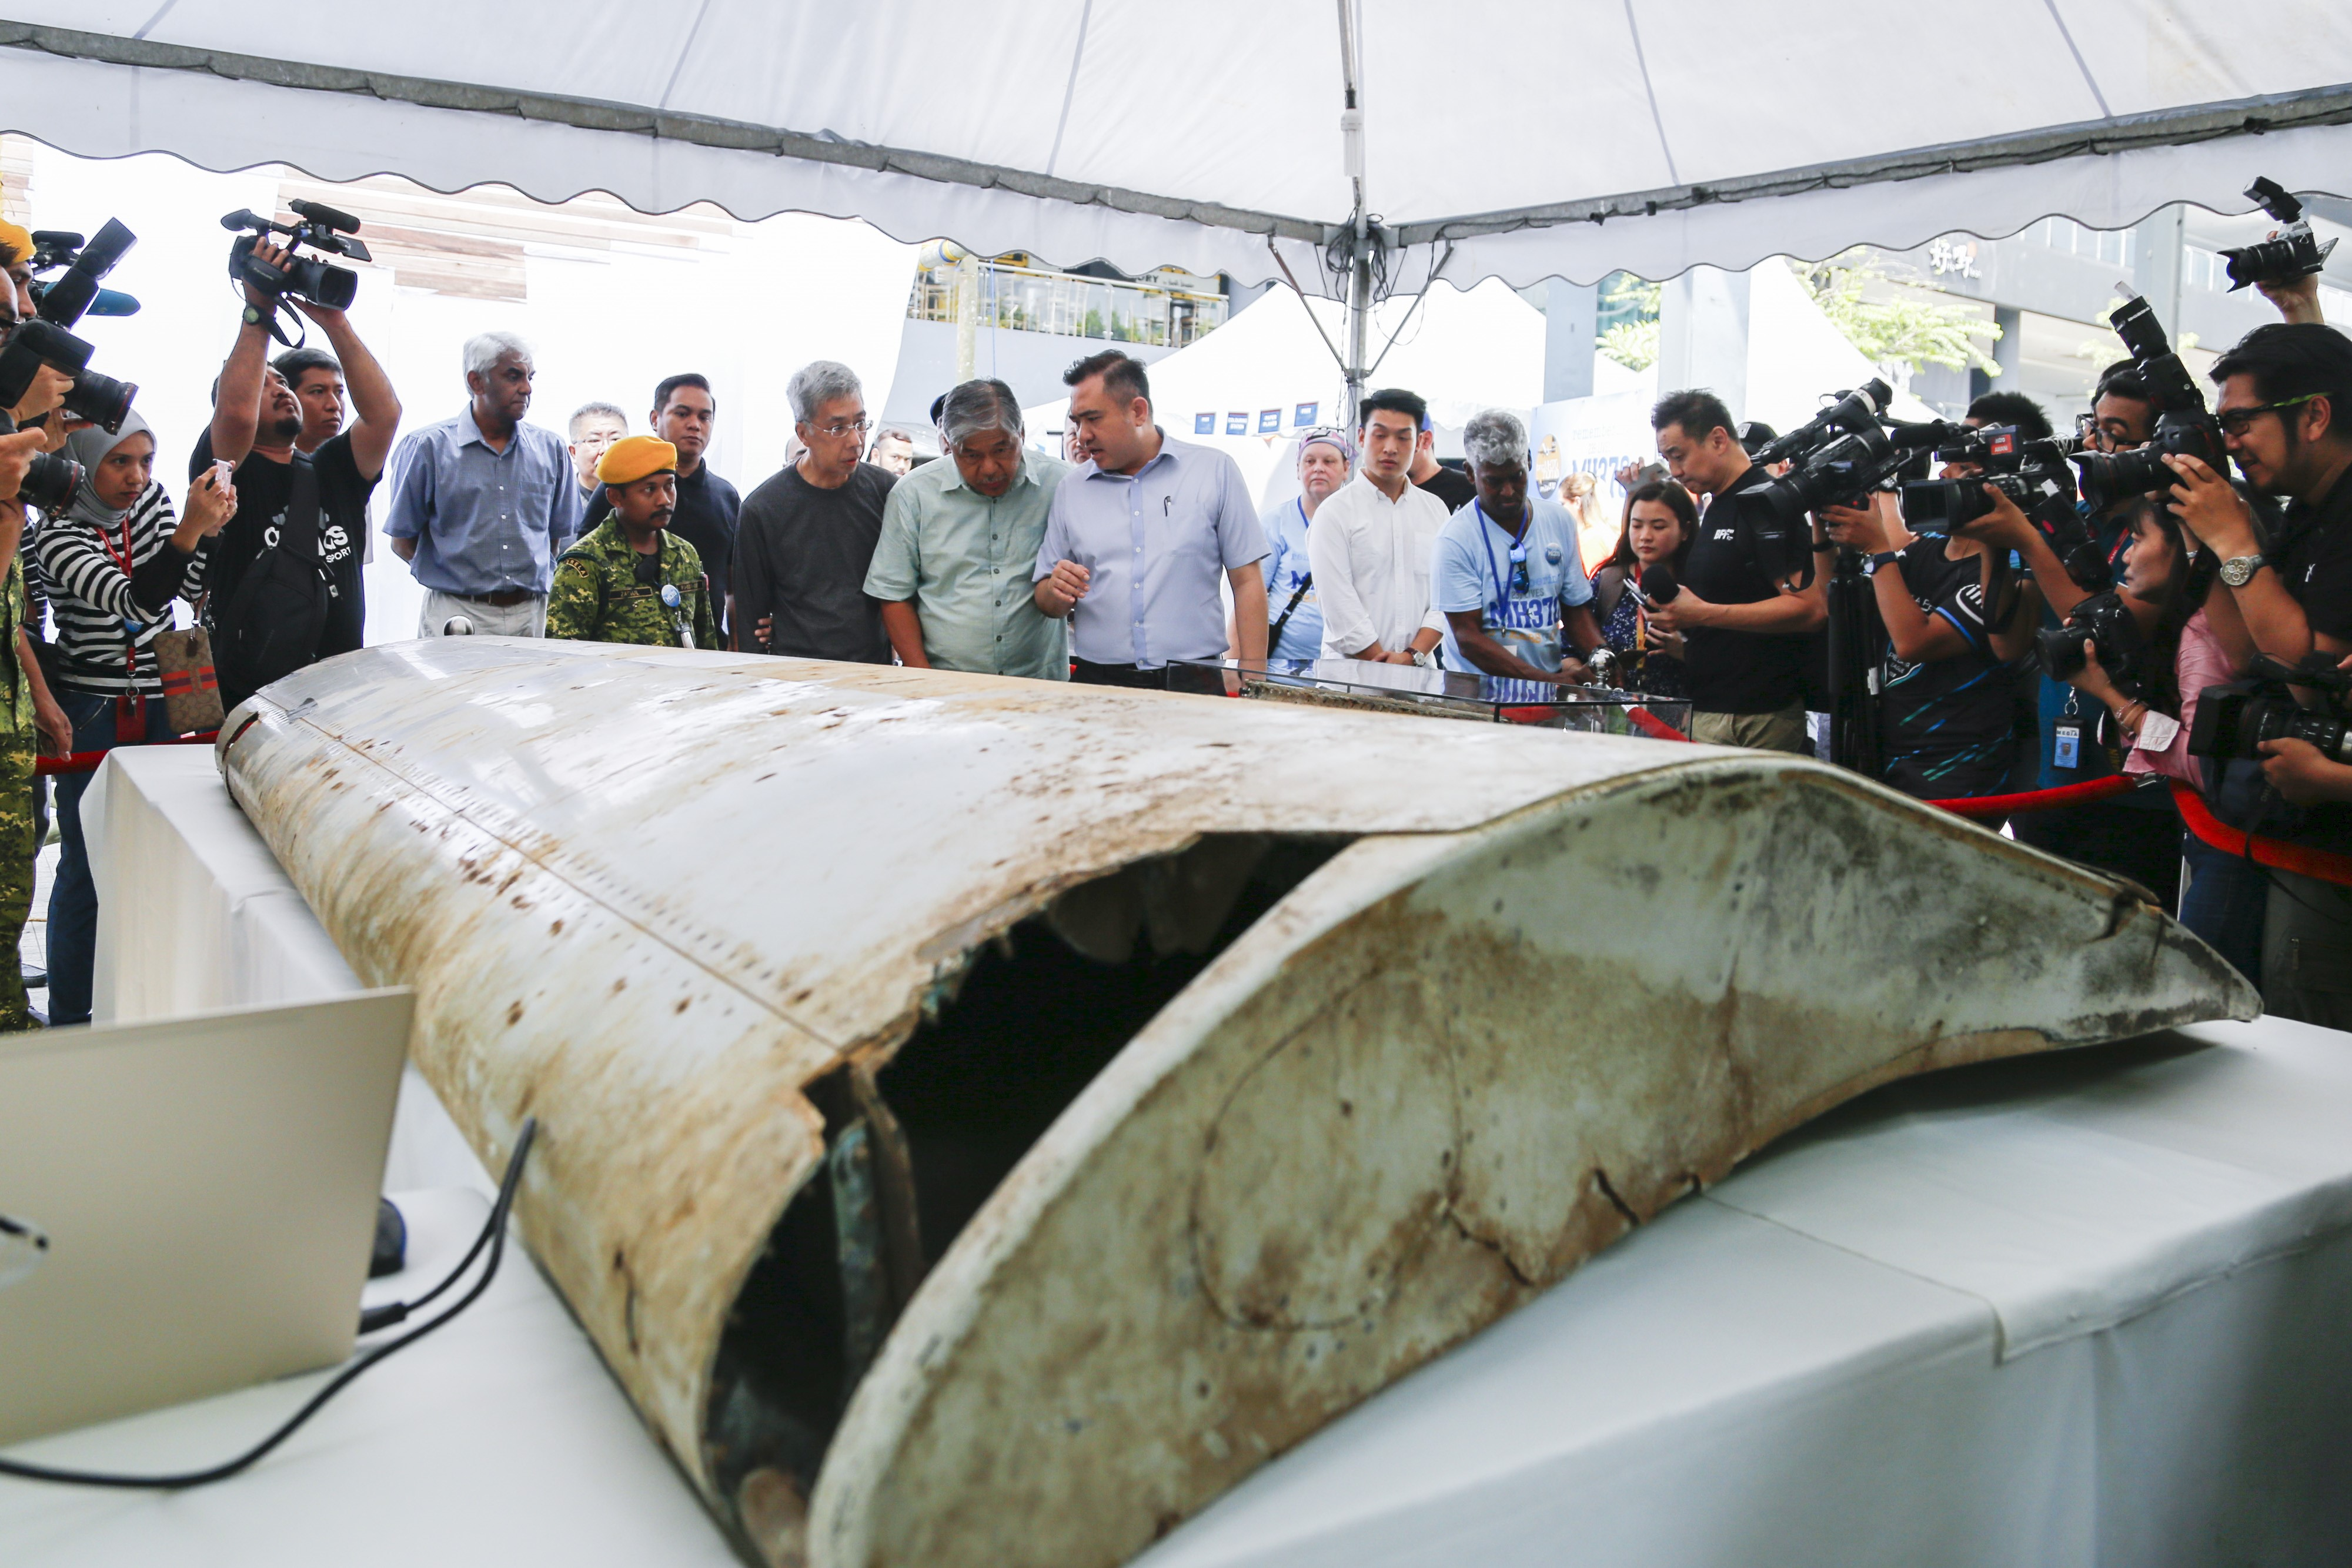 Malaysian Minister of Transport Anthony Loke looks at a wing flap that was identified as part of the missing Malaysia Airlines Flight MH370, displayed in Kuala Lumpur, Malaysia on March 3, 2019.